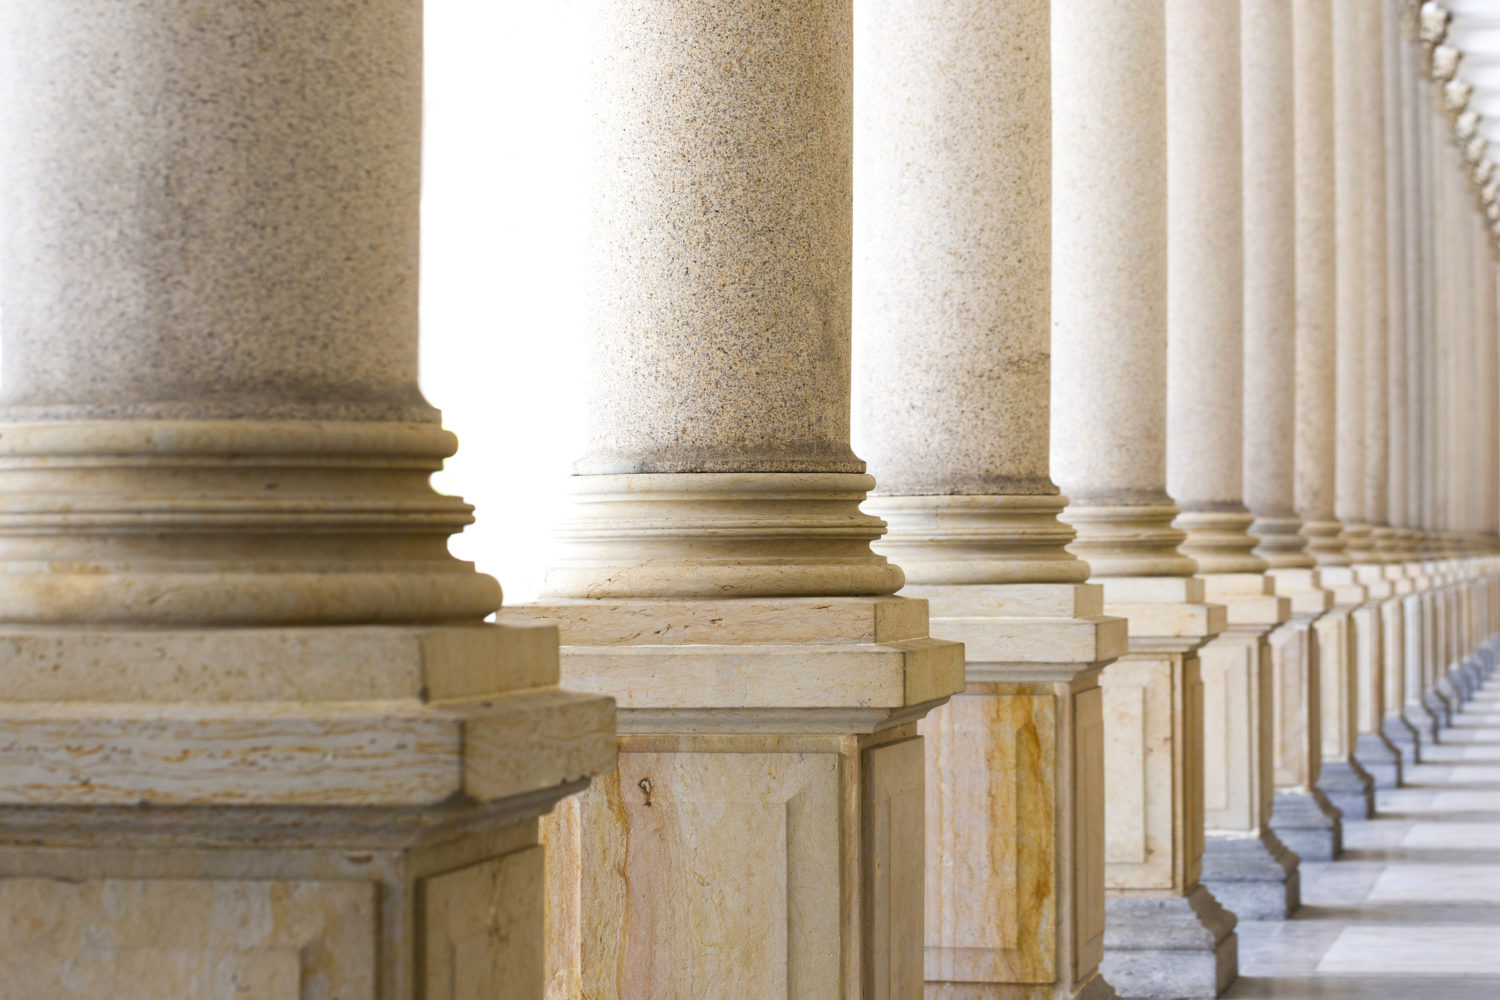 Colonnade row of classical stone columns background with copy 1500x1000